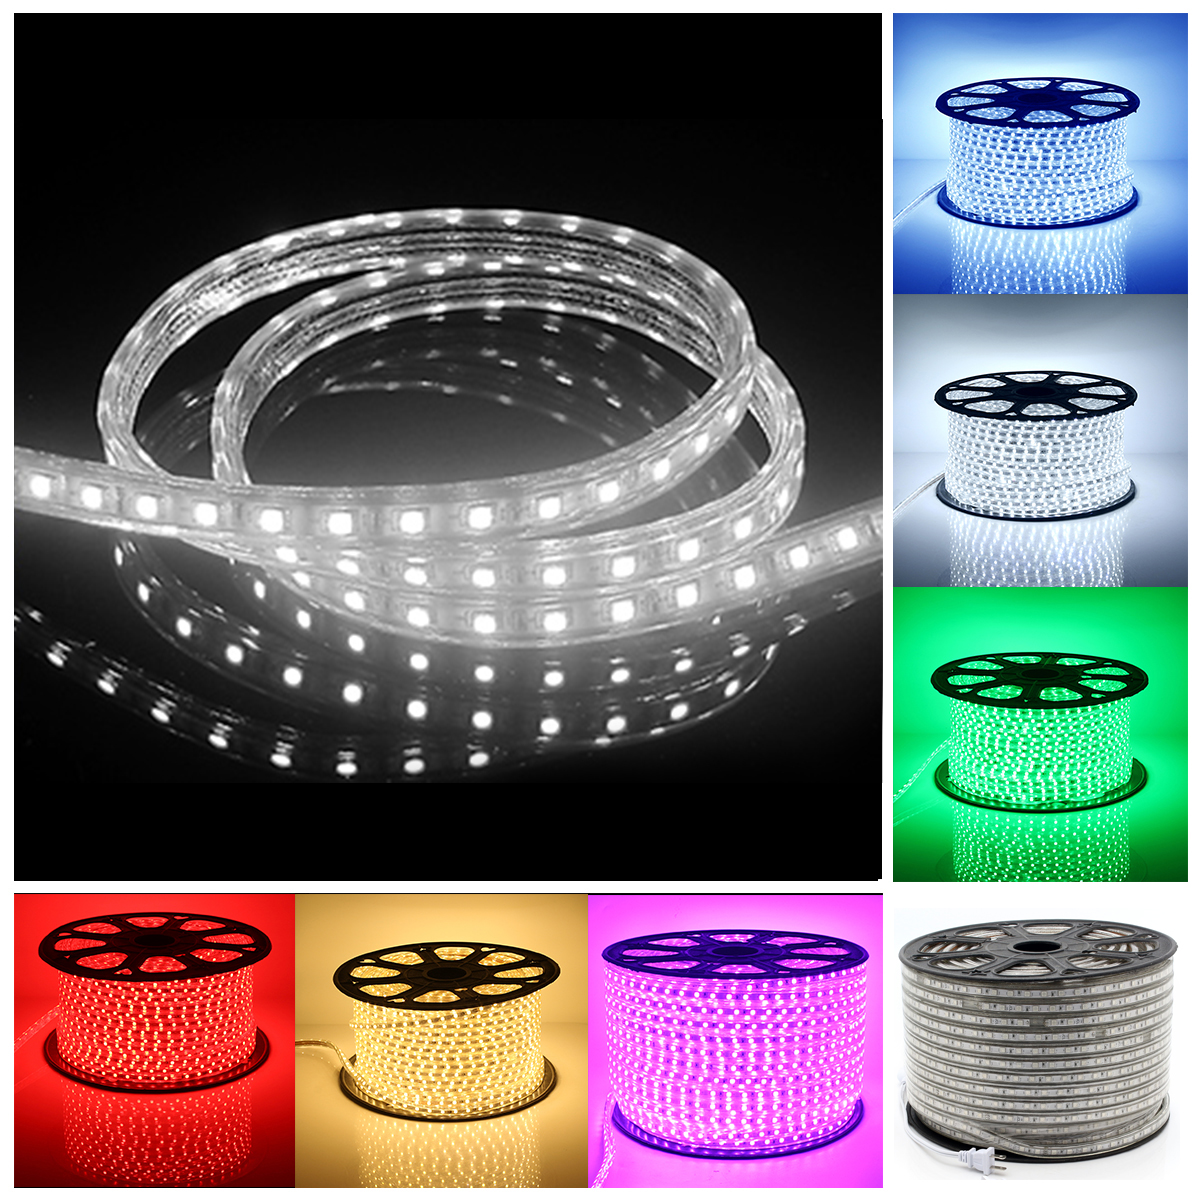 220V LED Strip Light IP67 Waterproof 30M 60 LEDs/ meter Ultra Bright Flexible 5050 SMD LED Outdoor Garden Home Strip Rope Light 20m waterproof rgb 5050 smd 60 leds m led tape lighting flexible tape rope strip light xmas party garden outdoor decor 220v